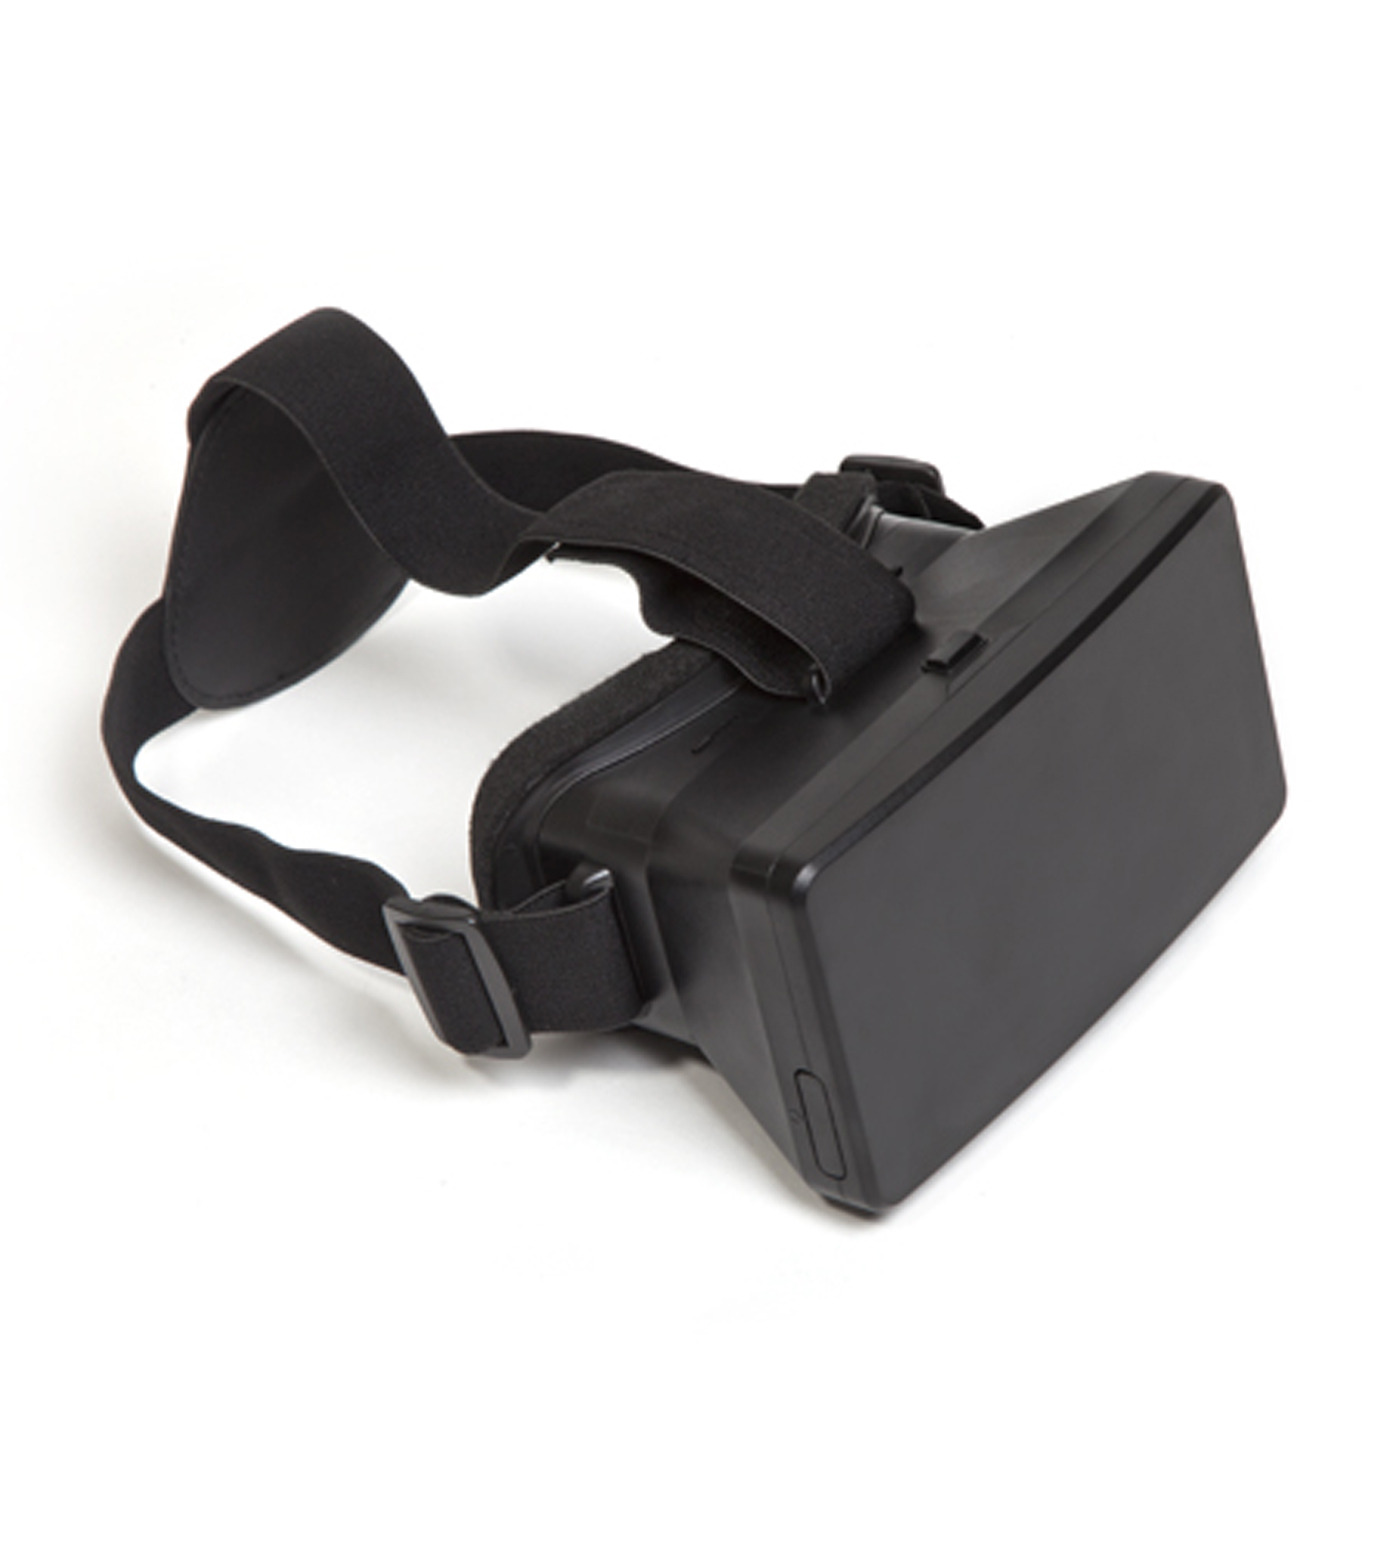 Thumbs Up(サムズアップ)のVIRTUAL REALITY HEADSET-BLACK(ガジェット/gadgets)-VIRTREALHD-13 拡大詳細画像2